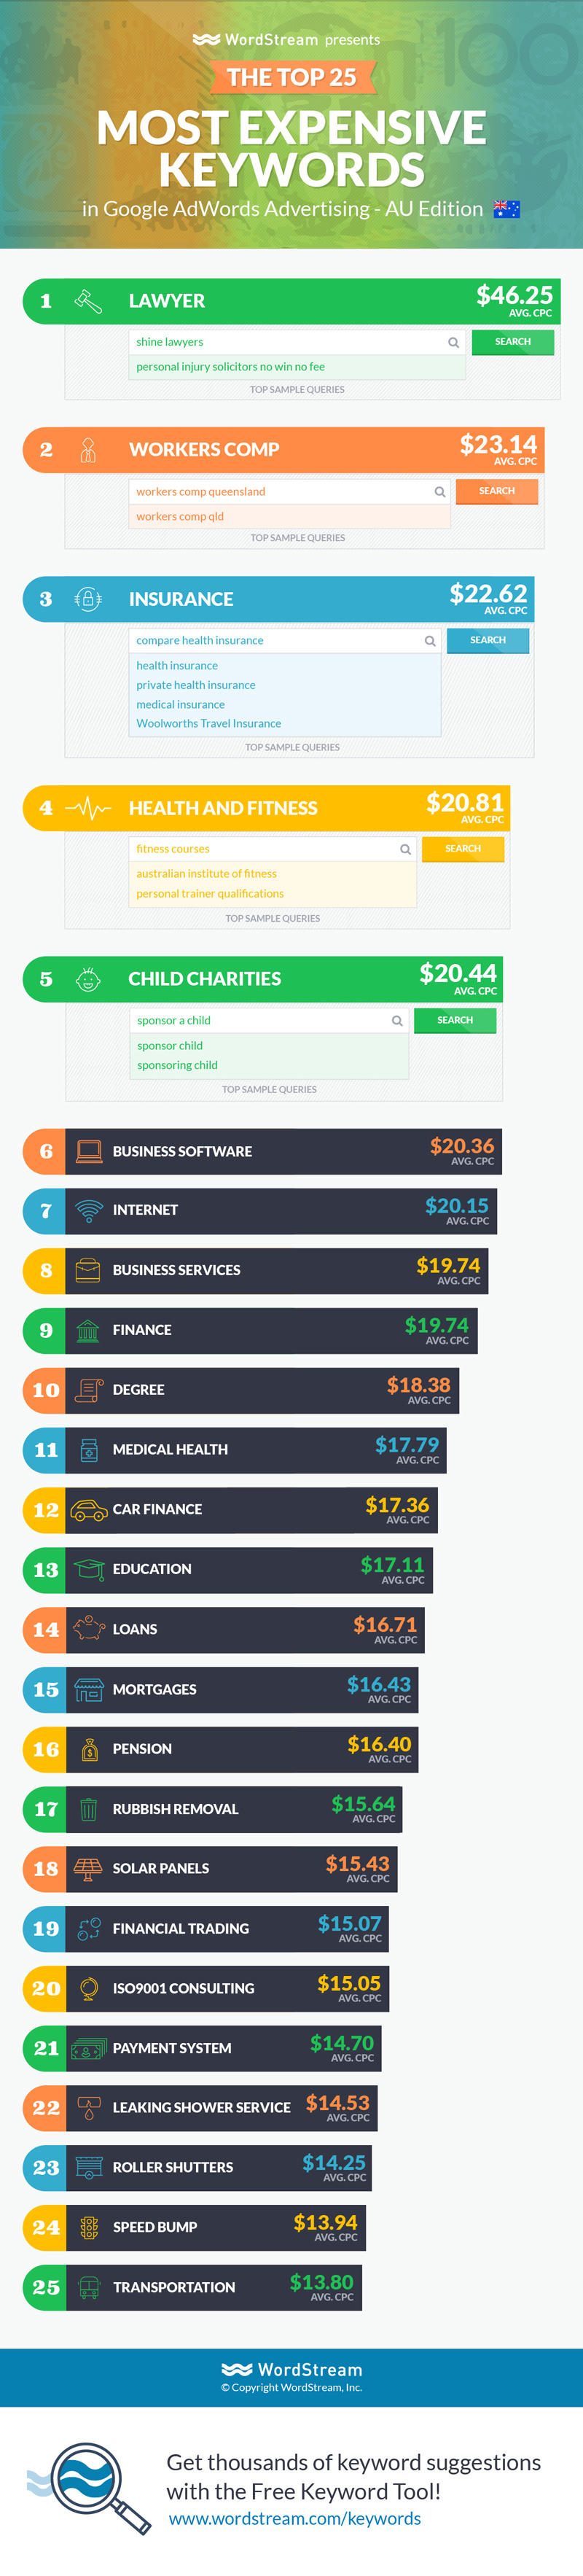 25 Most Expensive Keywords in Australia infographic by wordstream